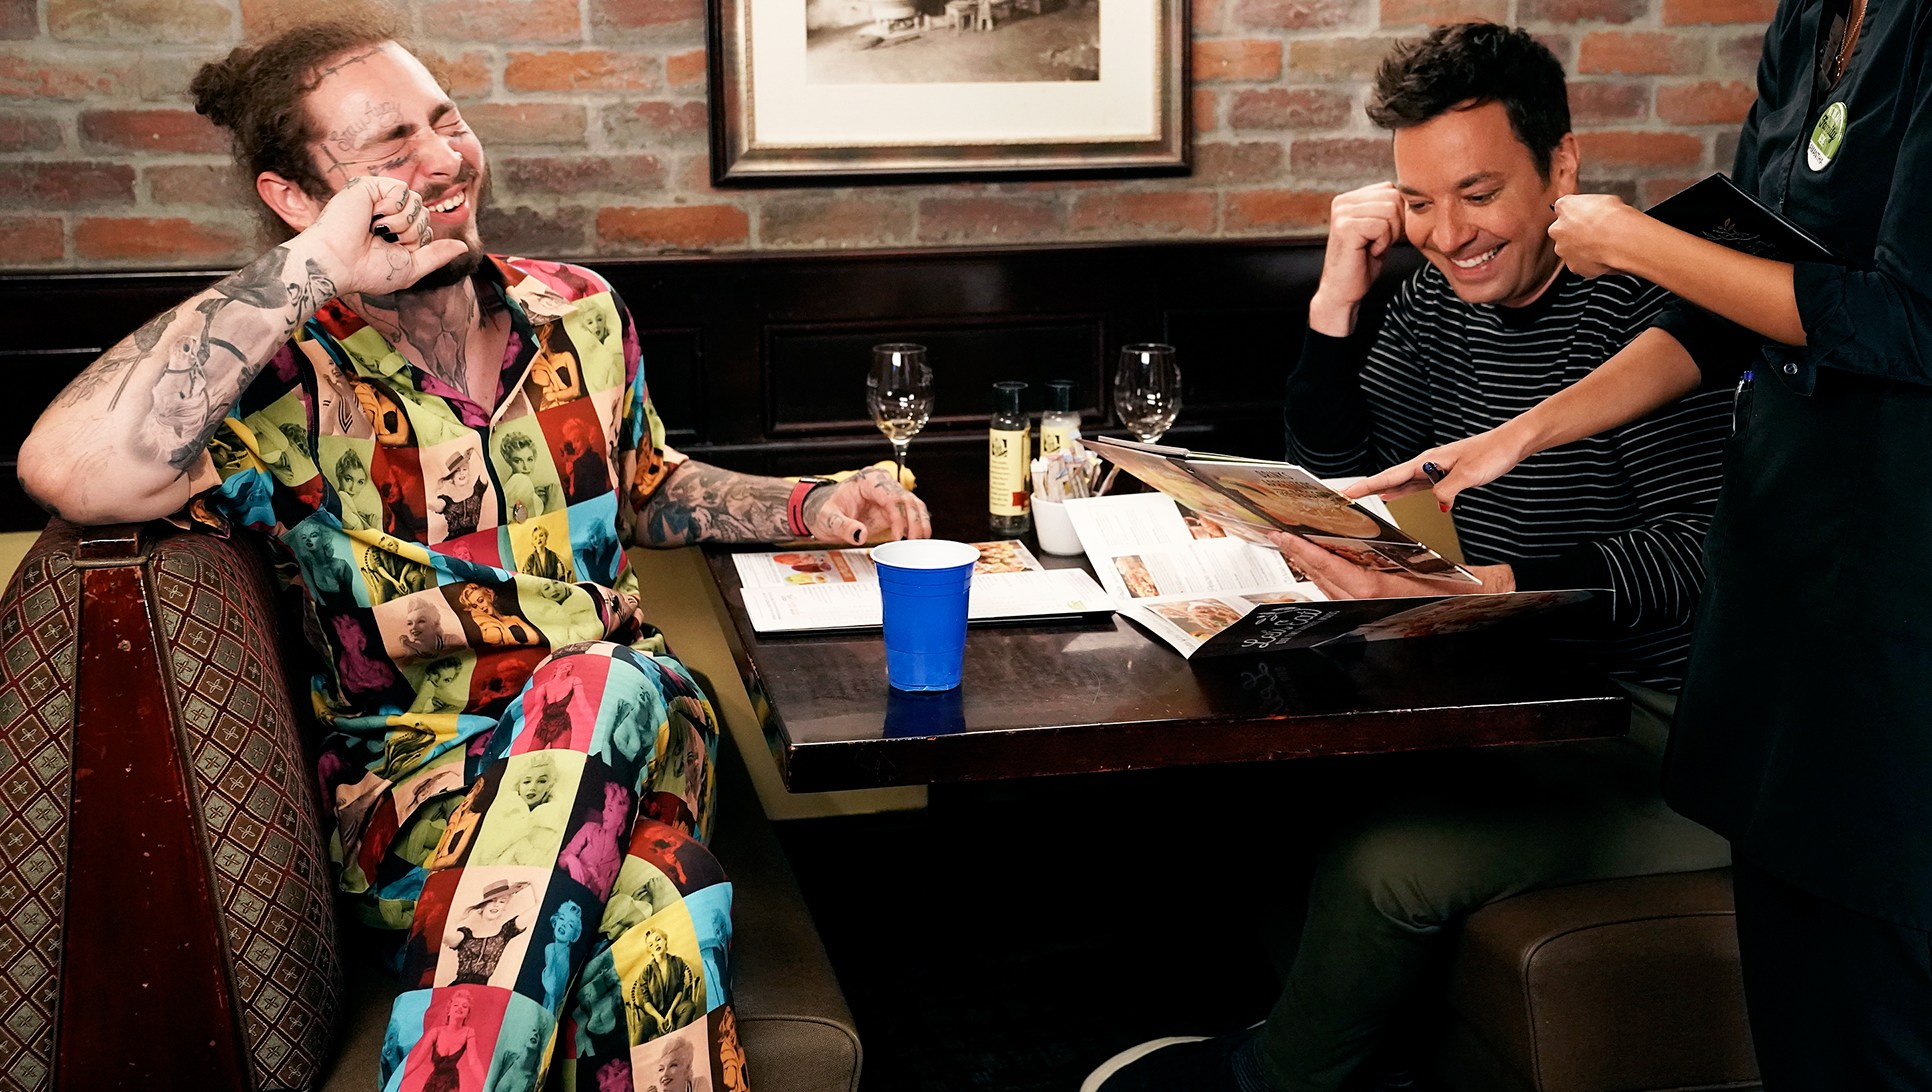 Jimmy Fallon Eats at Olive Garden for the First Time with Post Malone, Twitter Goes Wild